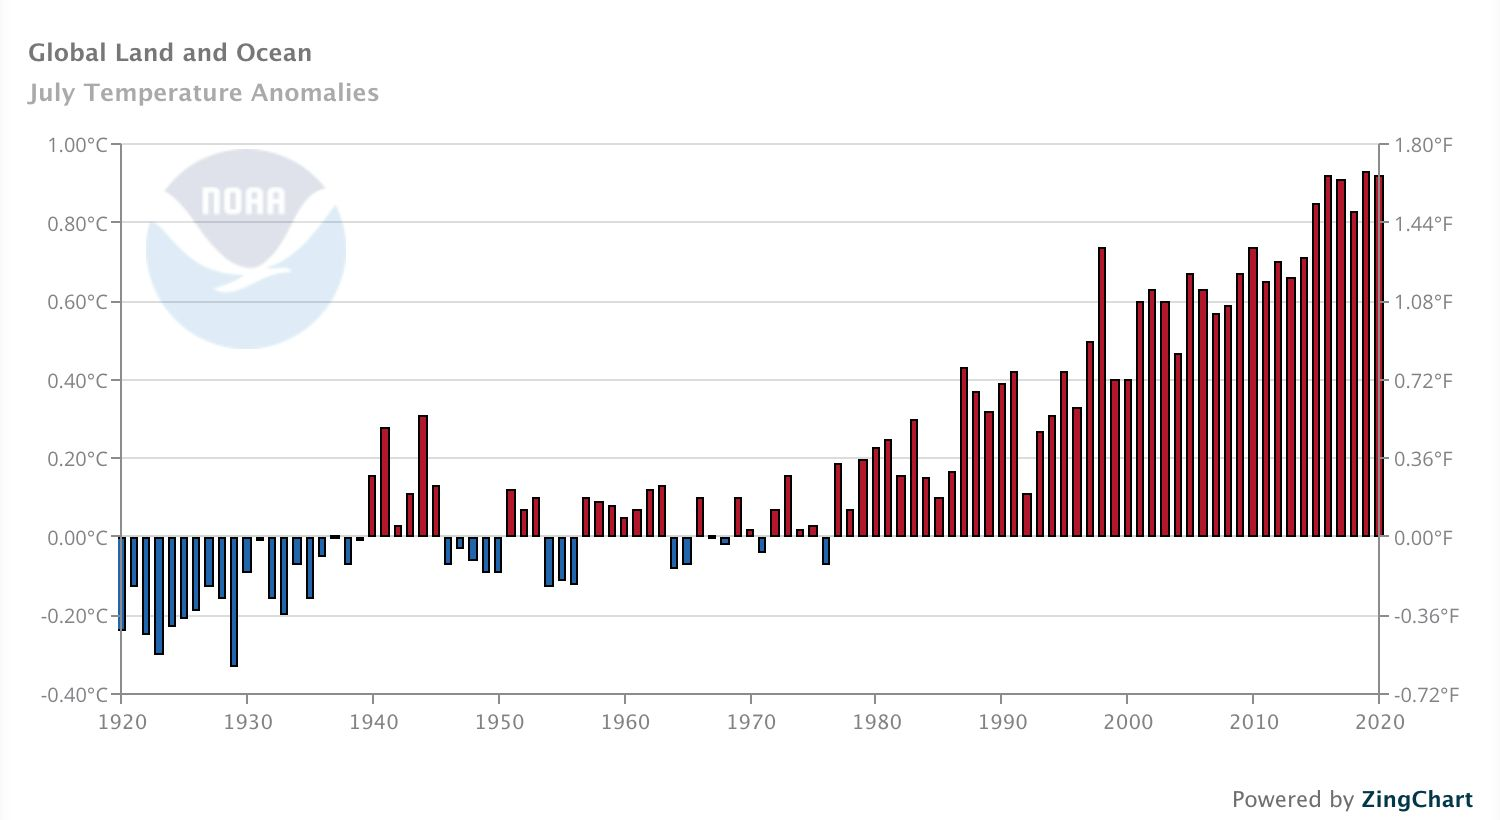 Global land and ocean temperature anomalies in July.